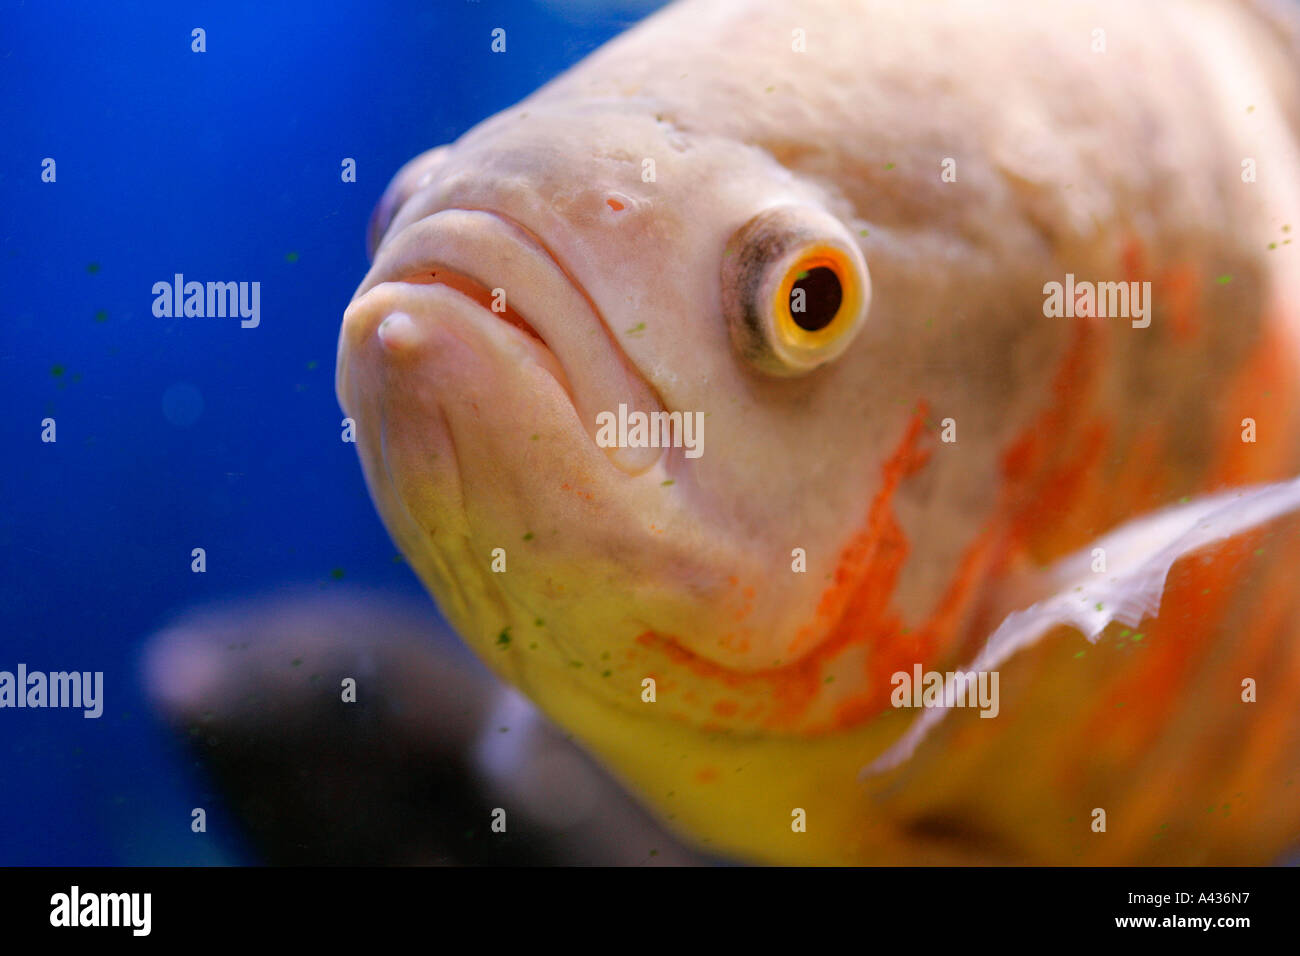 Freshwater fish tank yellow water - Stock Photo Fish Aquarium Tank Animal Fishes Freshwater Aquaria Tropical Goldfish Fancy Red Blue Yellow Lilac Colour Color Genetic Diversity